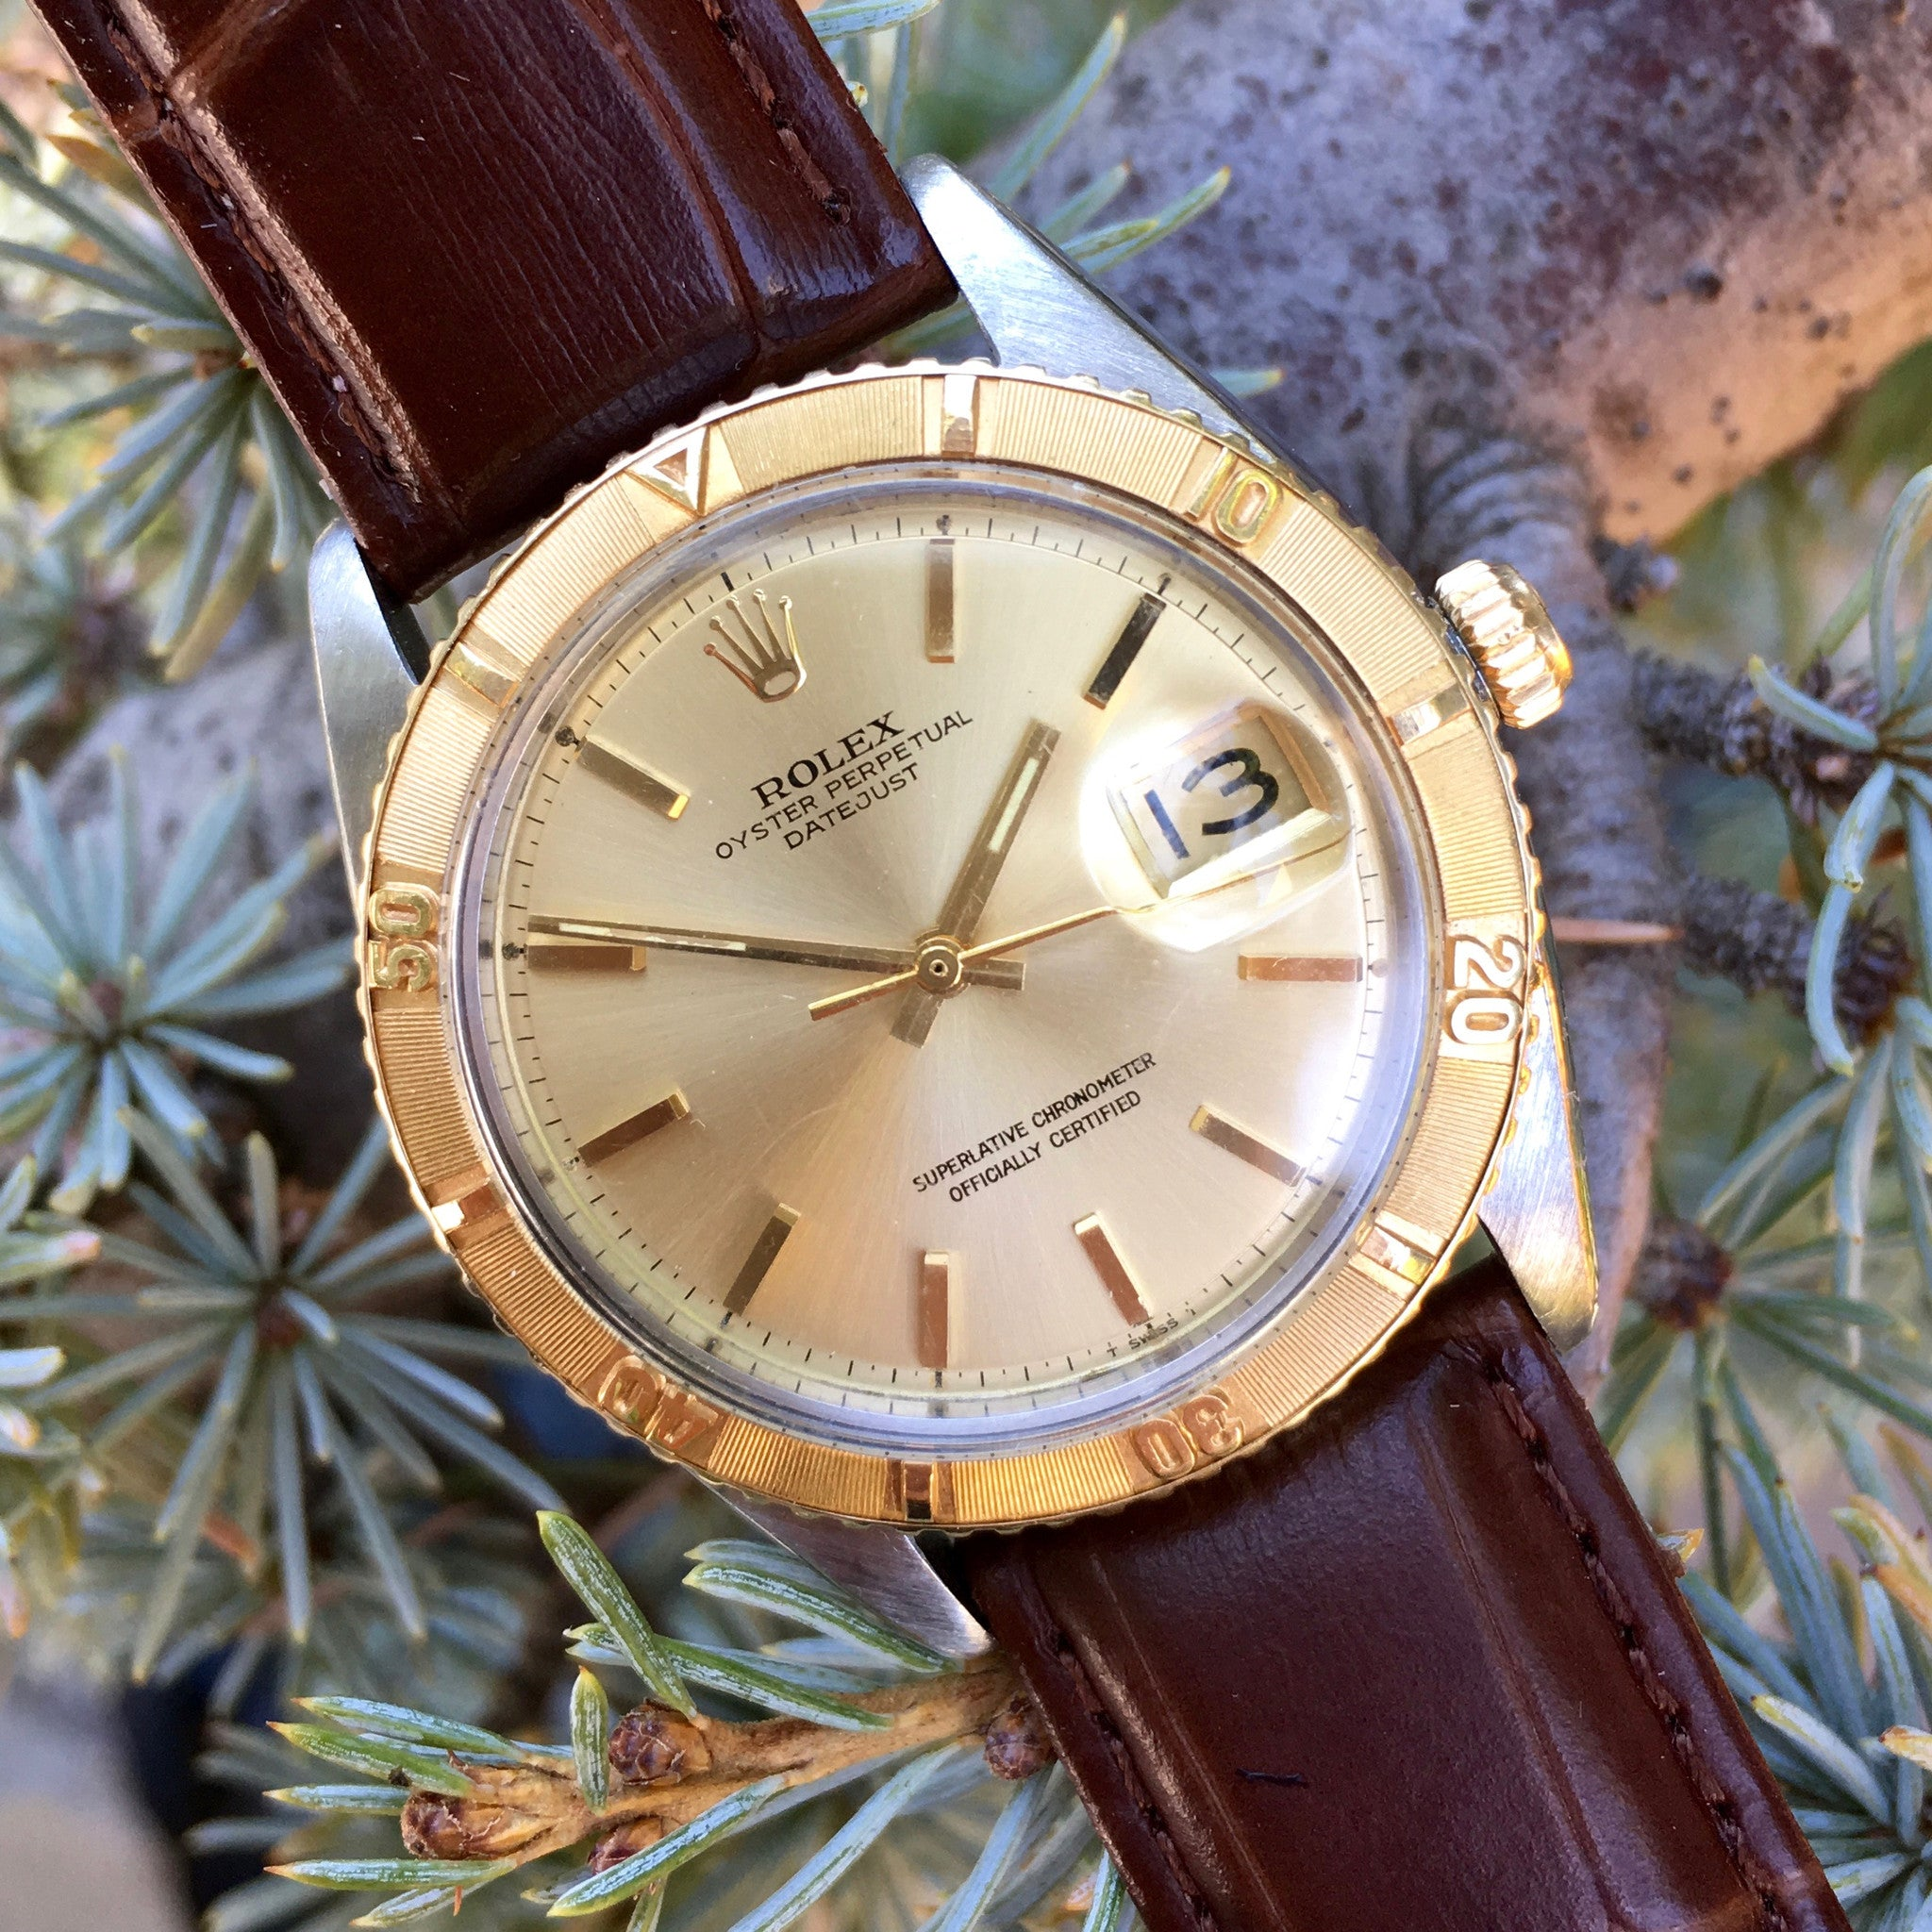 Vintage Rolex Thunderbird Datejust 1625 Champagne Two Tone 14K Steel 1964 Cal. 1570 Watch - Hashtag Watch Company